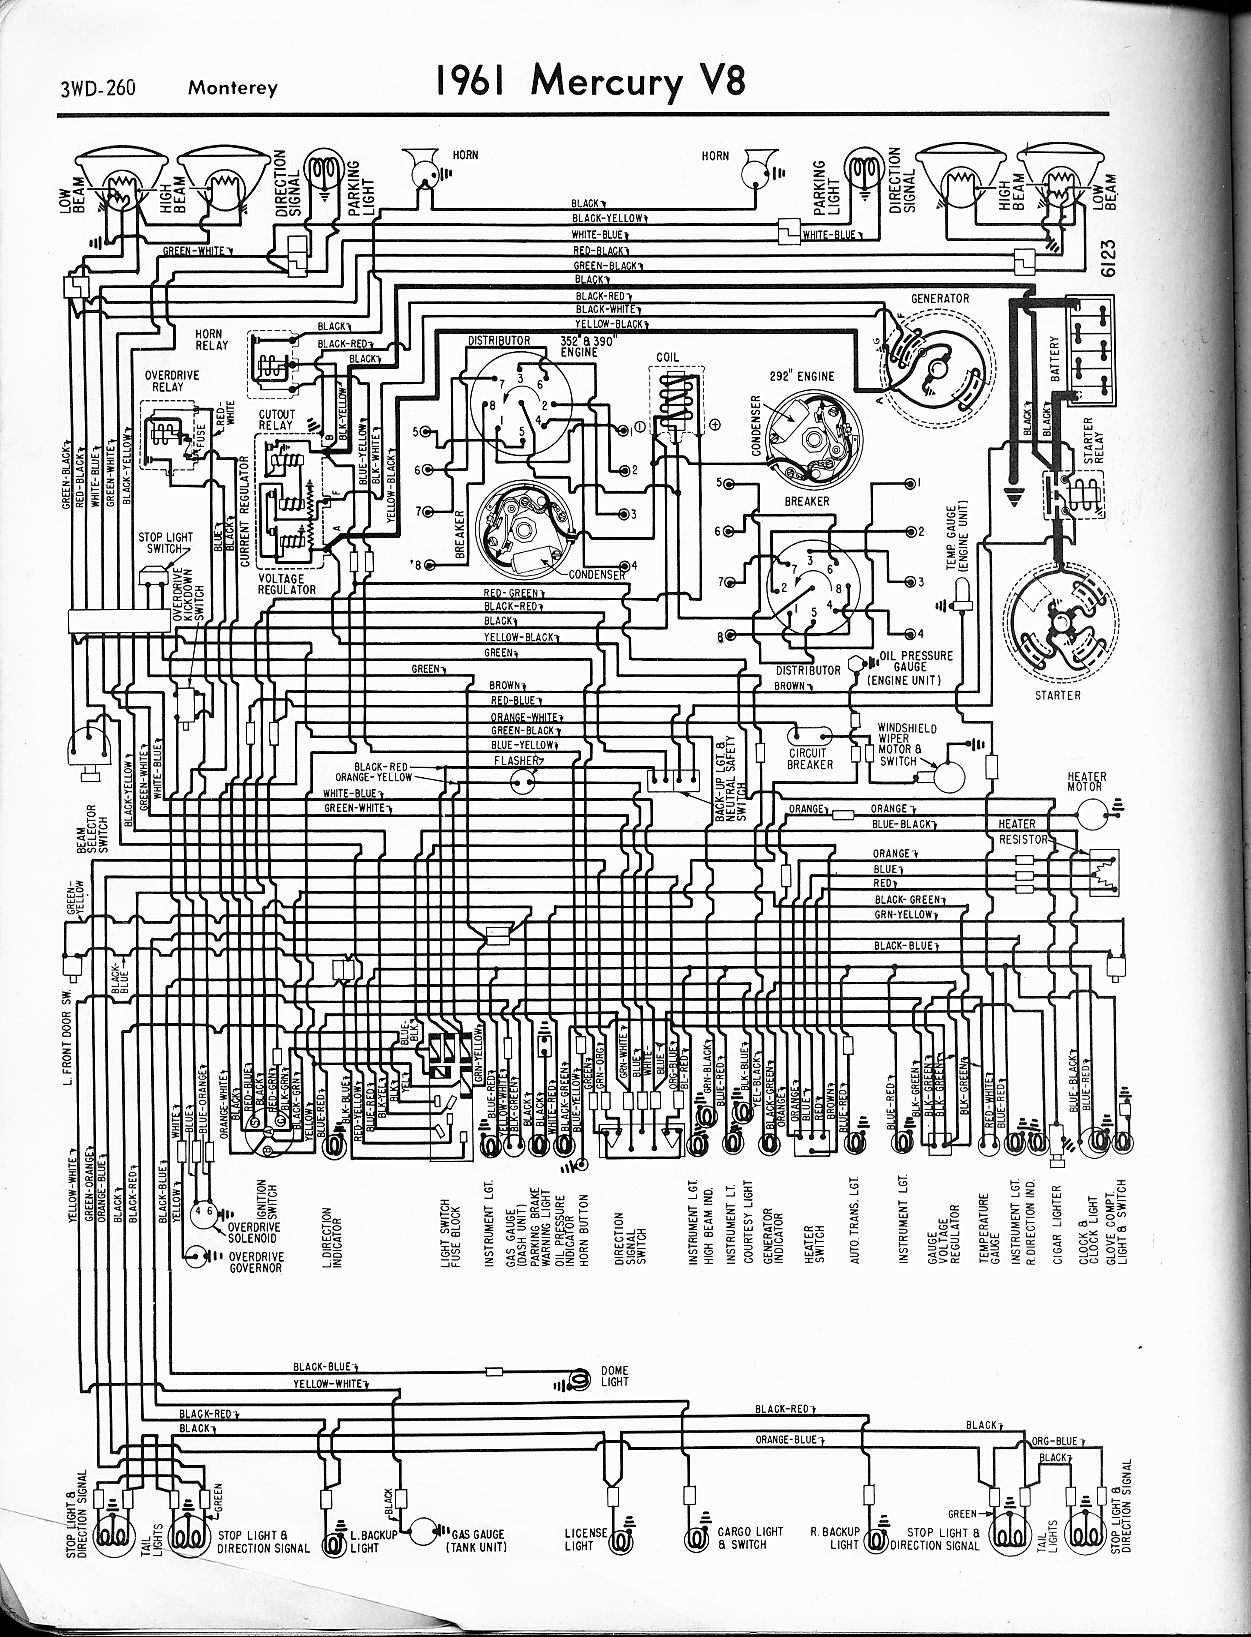 56 Mercury Montclair Wiring Diagram Good 1st 25 Hp Outboard Diagrams The Old Car Manual Project Rh Oldcarmanualproject Com 57 1956